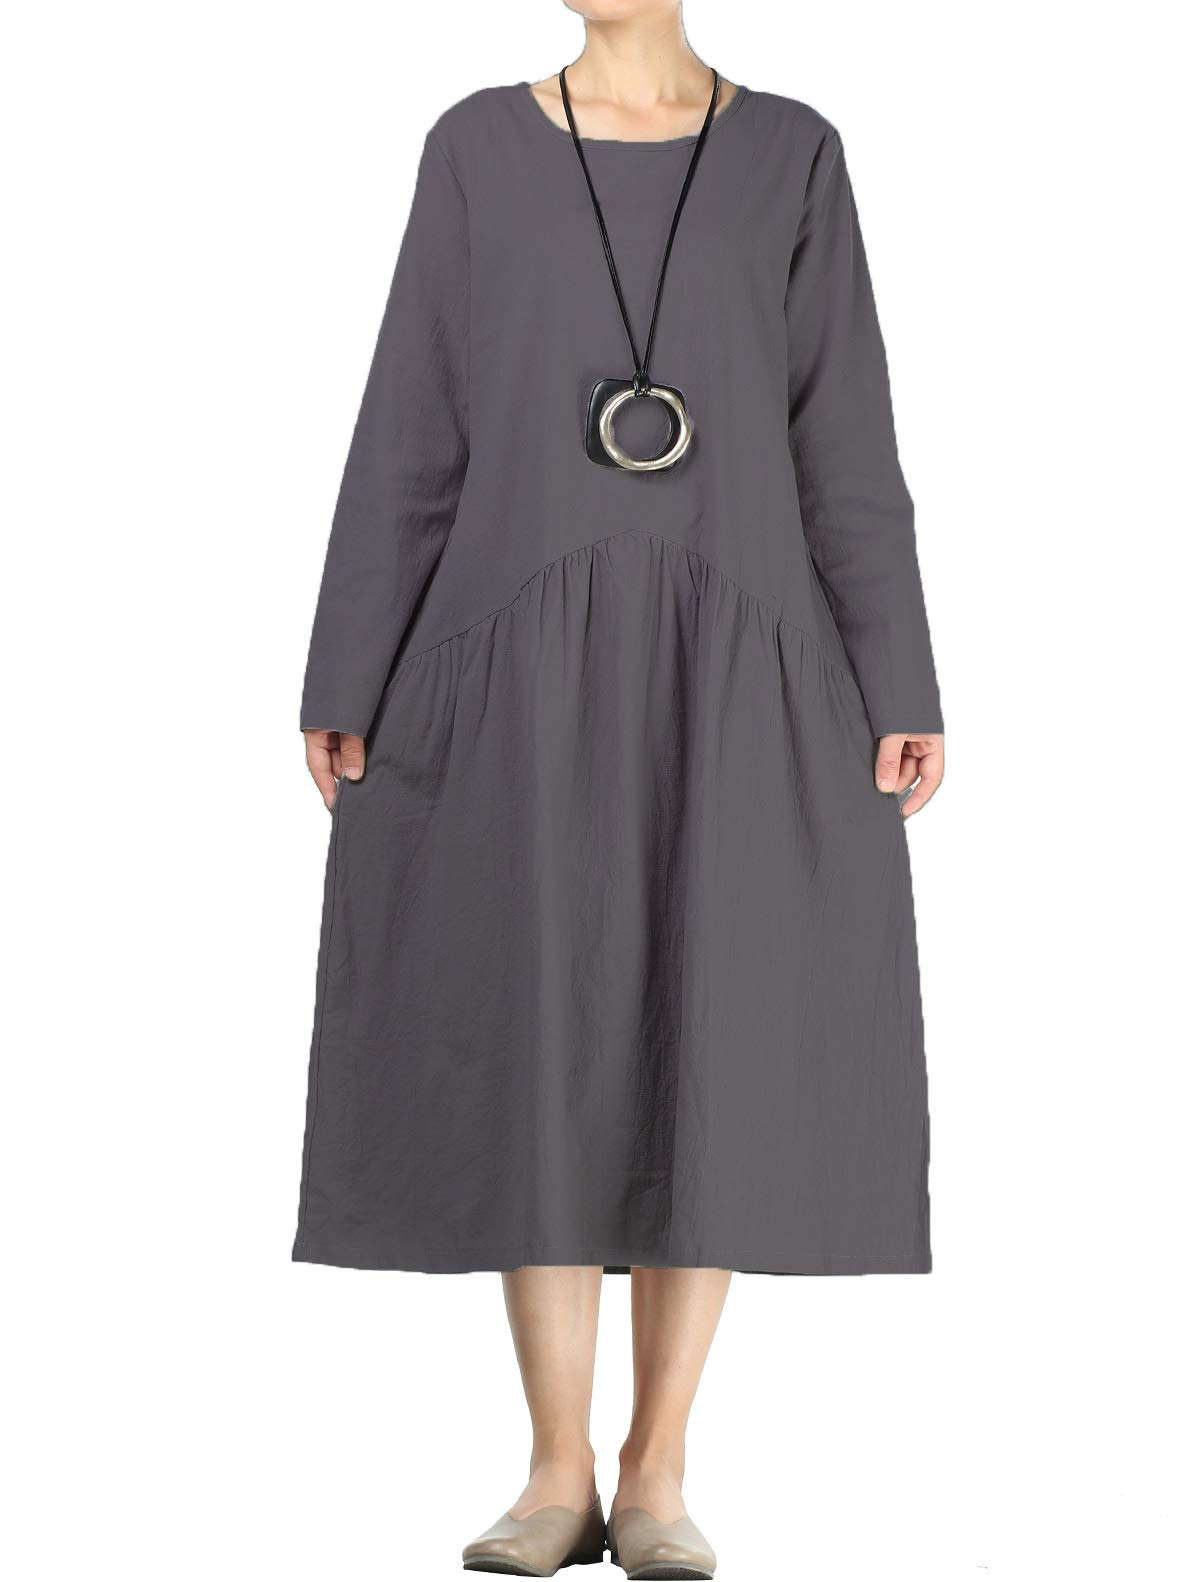 4fa3ce41d2 Mordenmiss Women s Pleated Cotton Linen Long Sleeve Dresses with Pockets  (2XL Dark Gray)